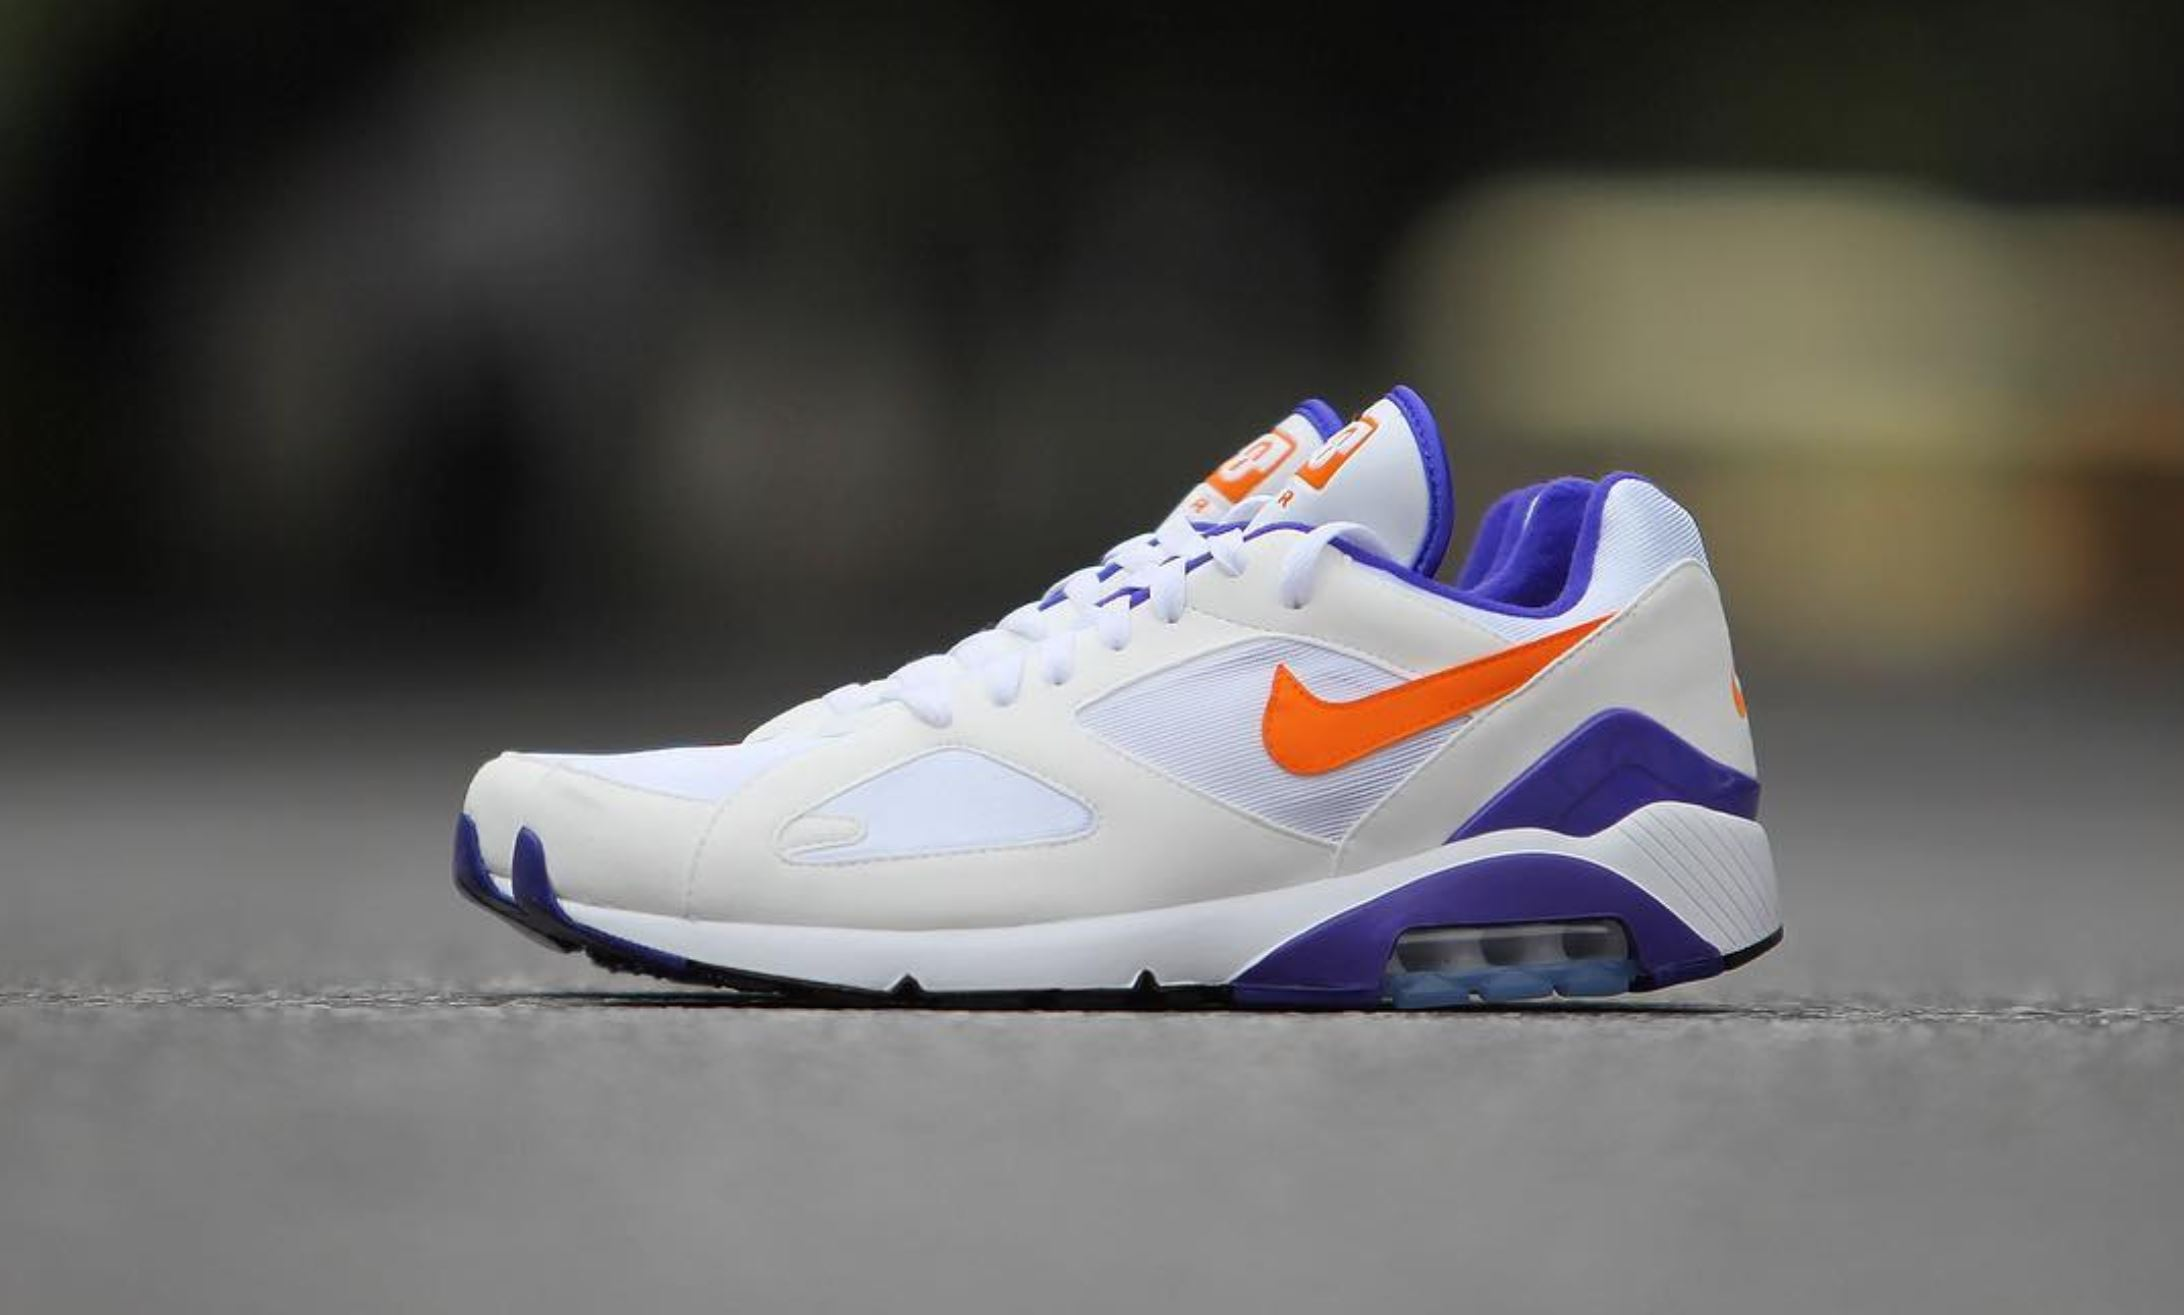 Here's a Detailed Look at the Nike Air Max 180 Dropping